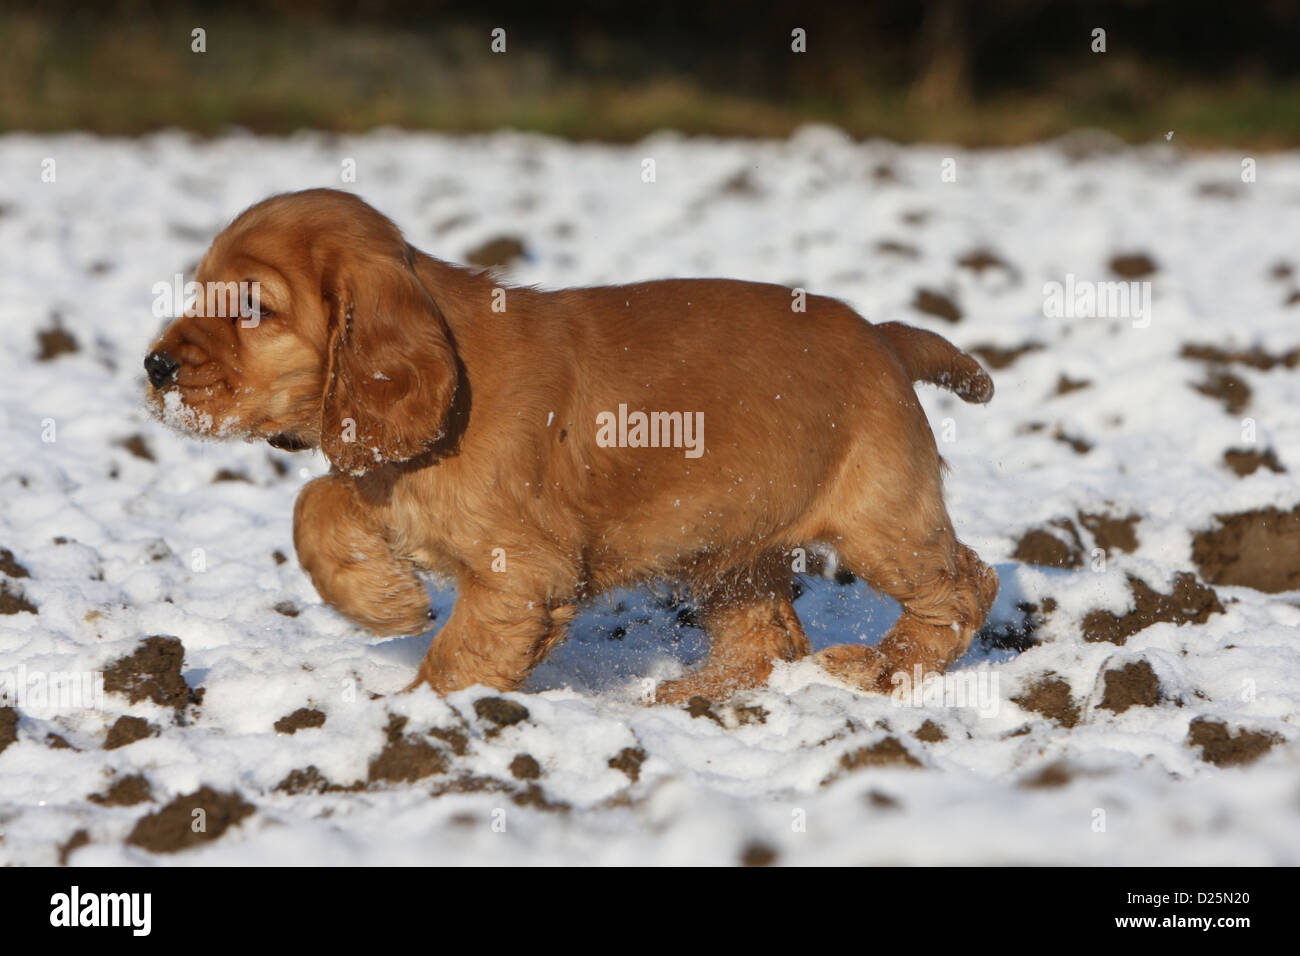 Dog English Cocker Spaniel Puppy Red Standing Paw Raised In Snow Stock Photo Alamy